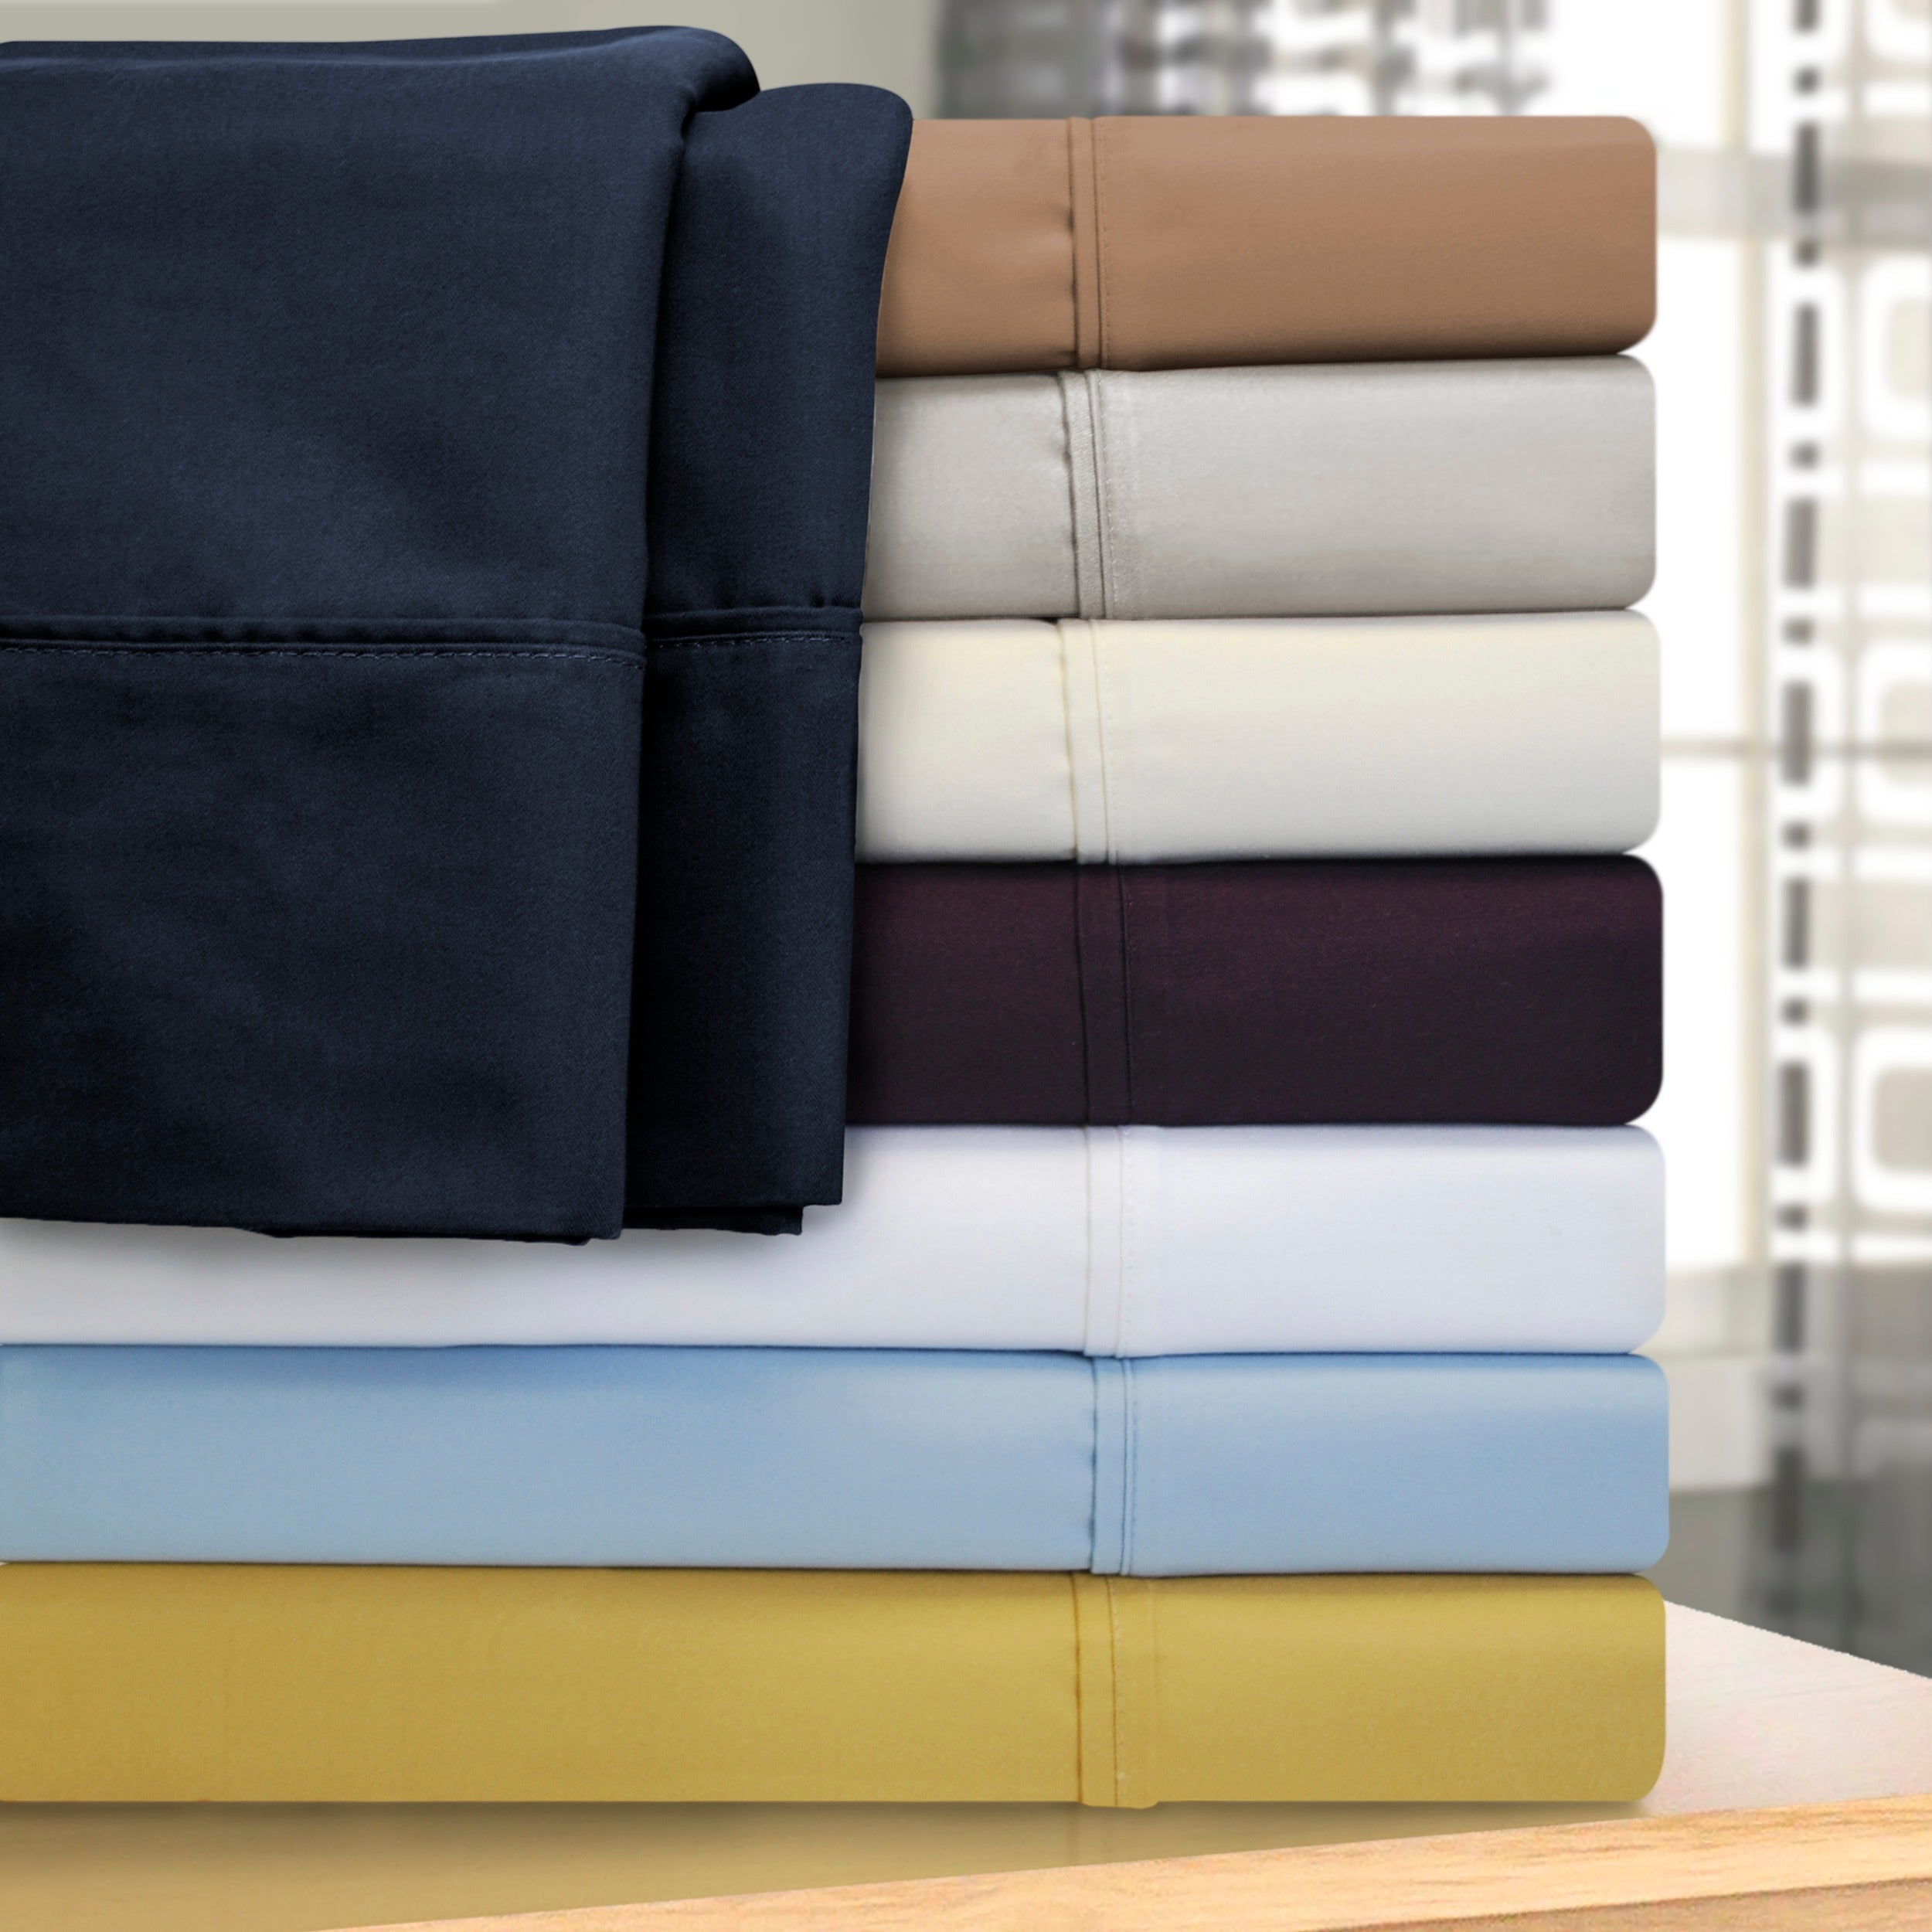 5 Pc Split Sheet Set Extra Deep Pocket Egyptian Cotton 1000 Thread Count King